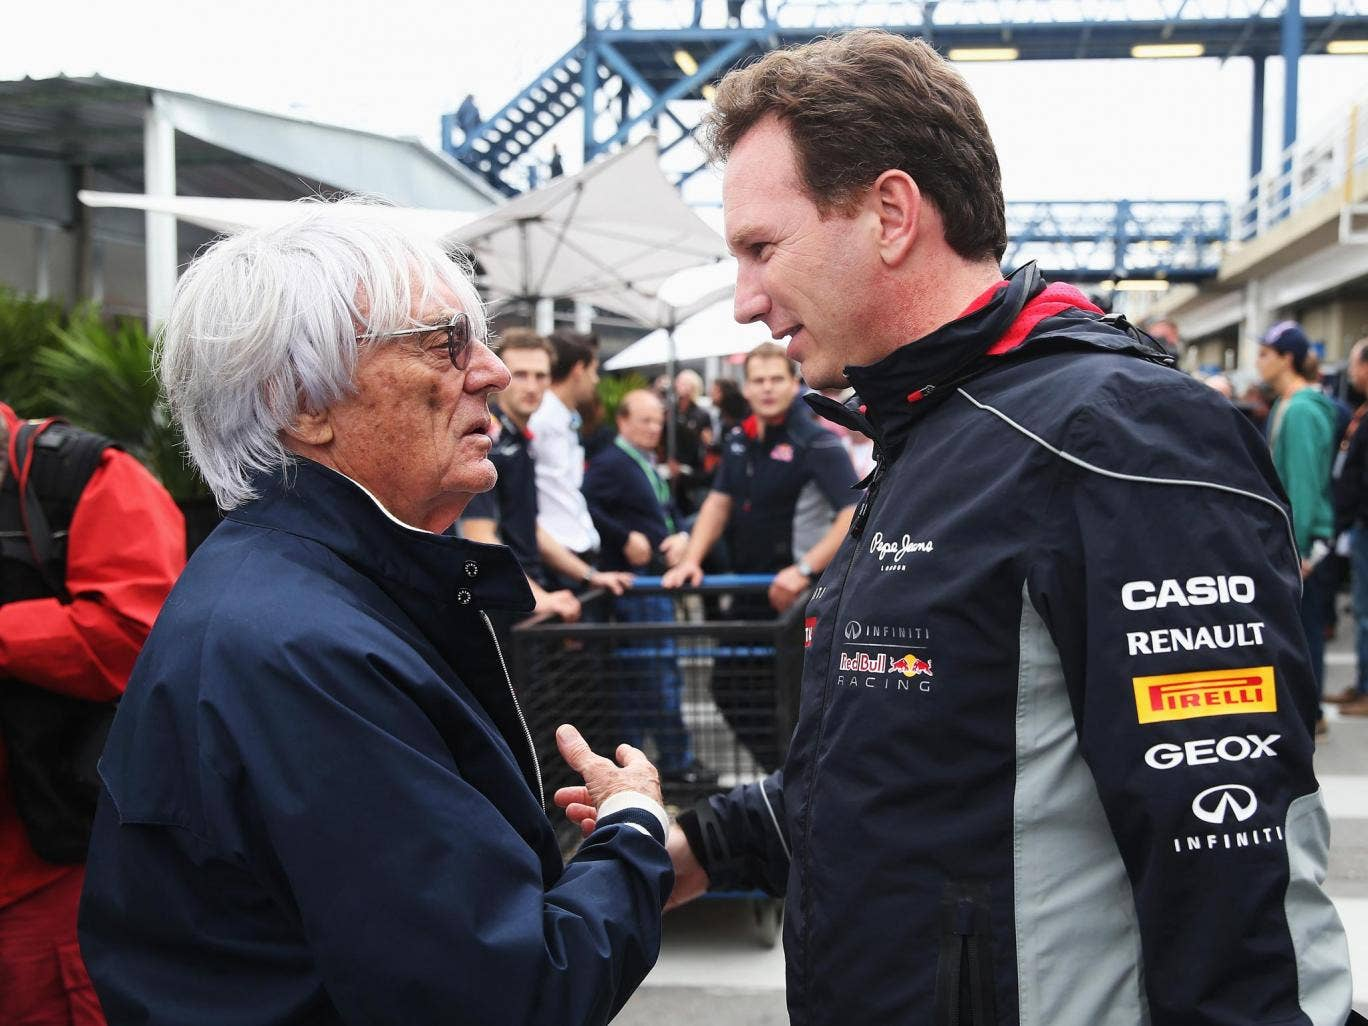 Bernie Ecclestone chatting with the Red Bull principal, Christian Horner